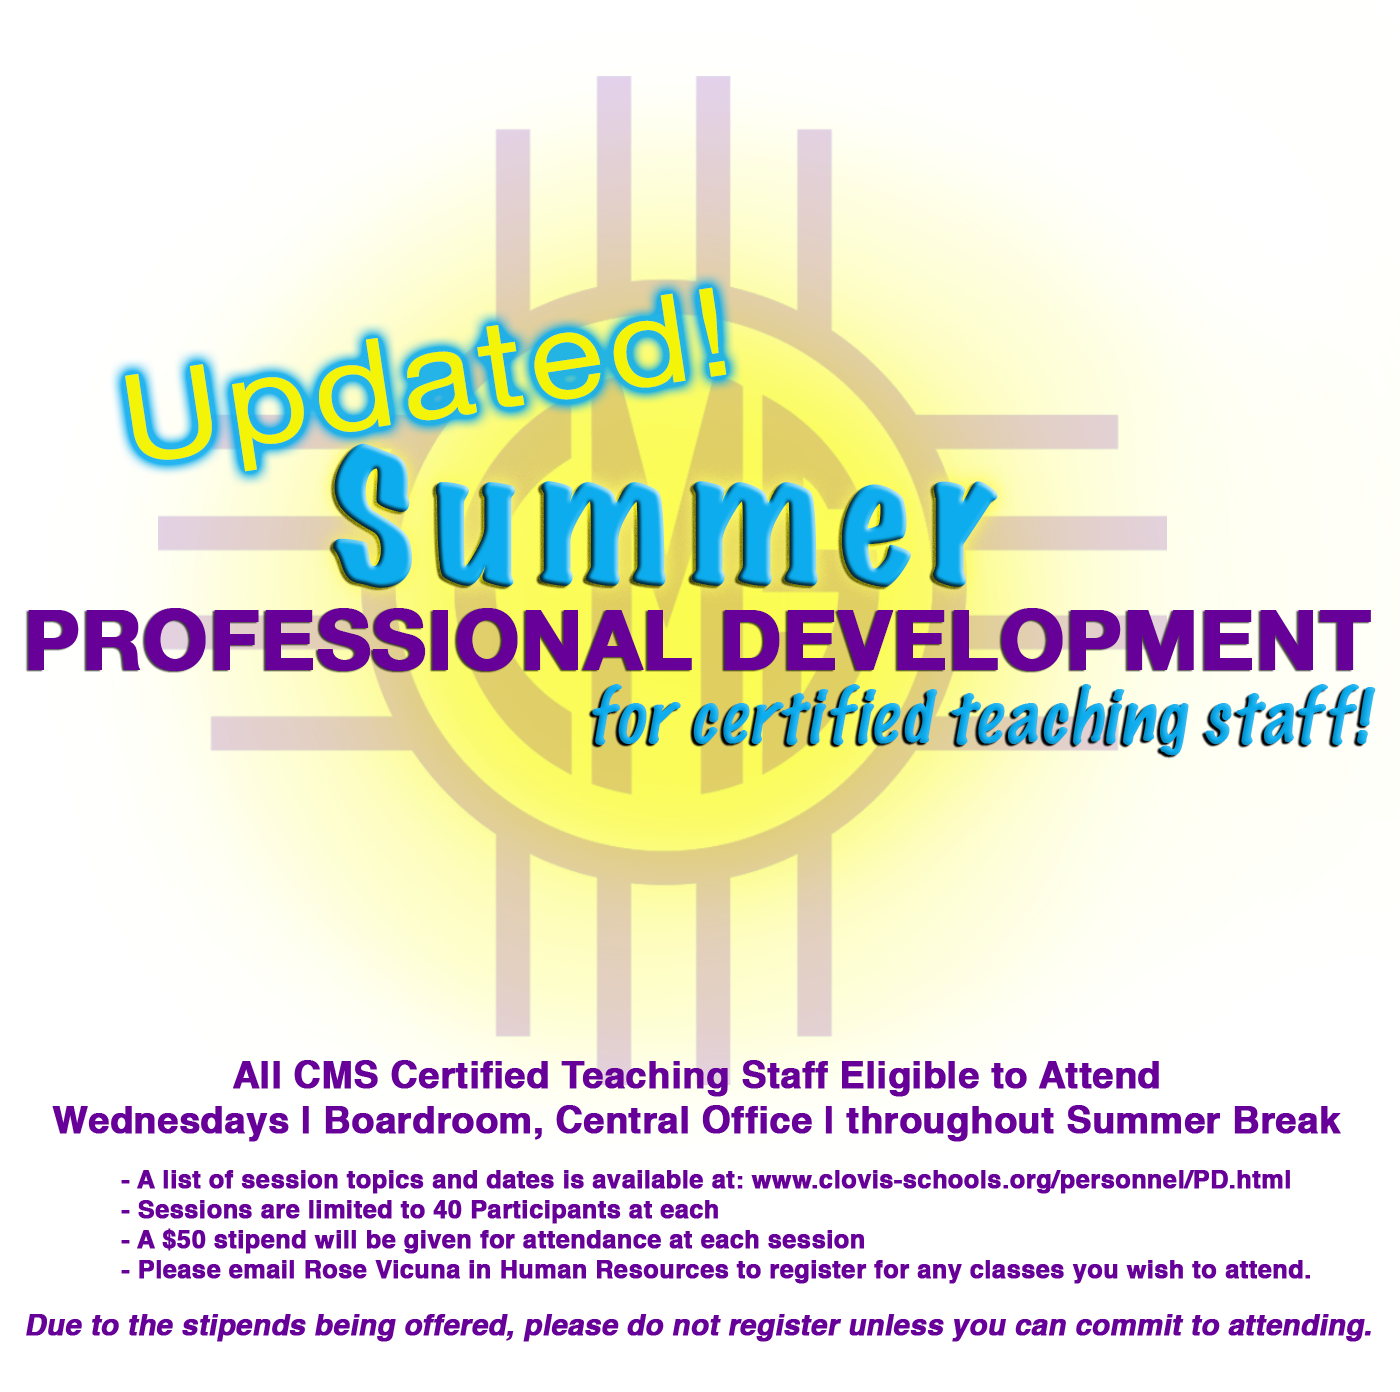 Image with text explaining summer professional development for certified teaching staff